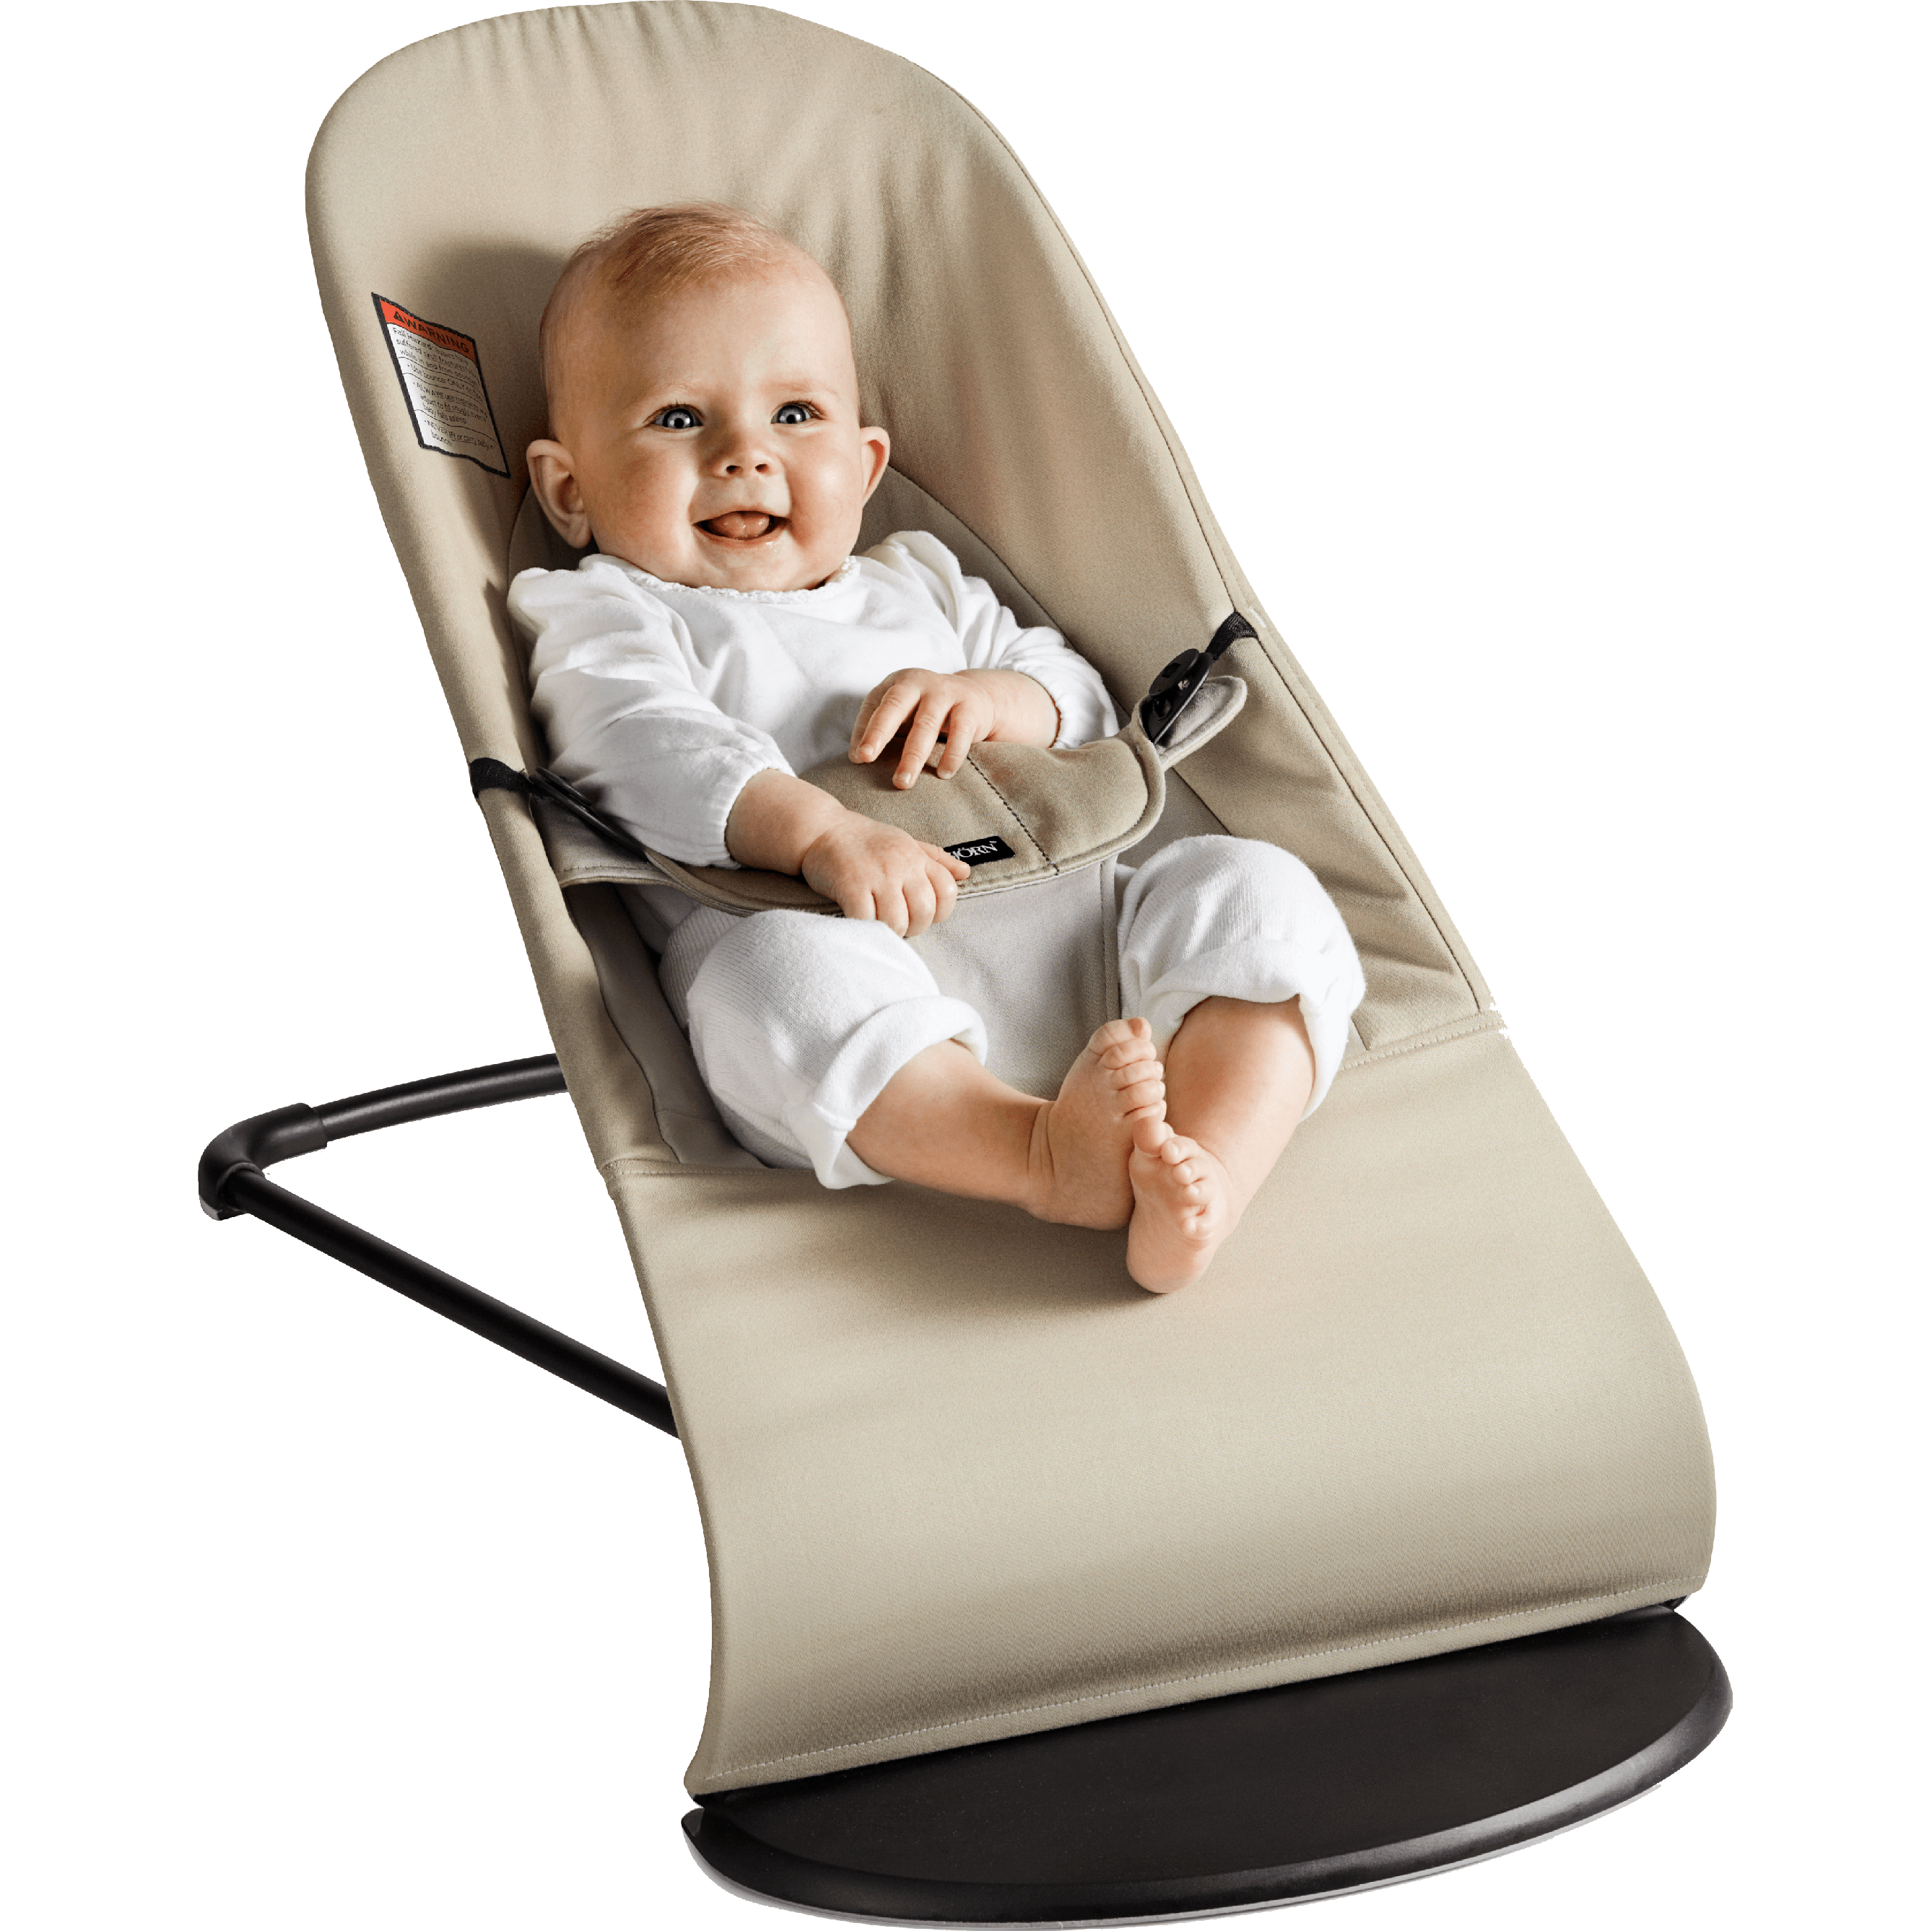 Toddler Soft Chairs Balance Soft An Ergonomic Baby Bouncer BabybjÖrn